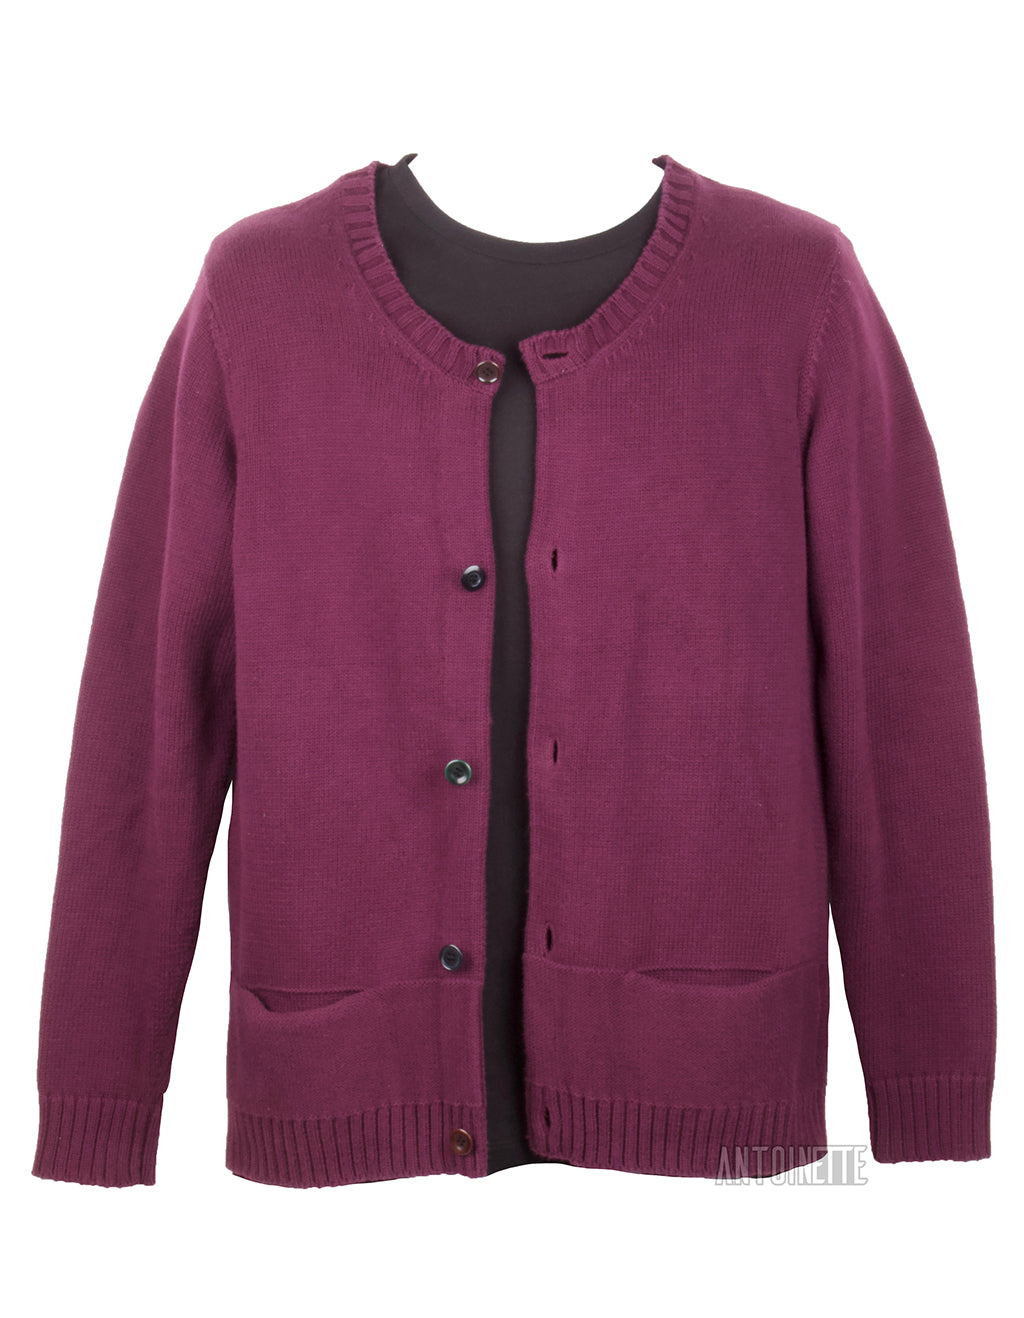 af942221494 Undercover Maroon Thick Cardigan Sweater - Antoinette Boutique